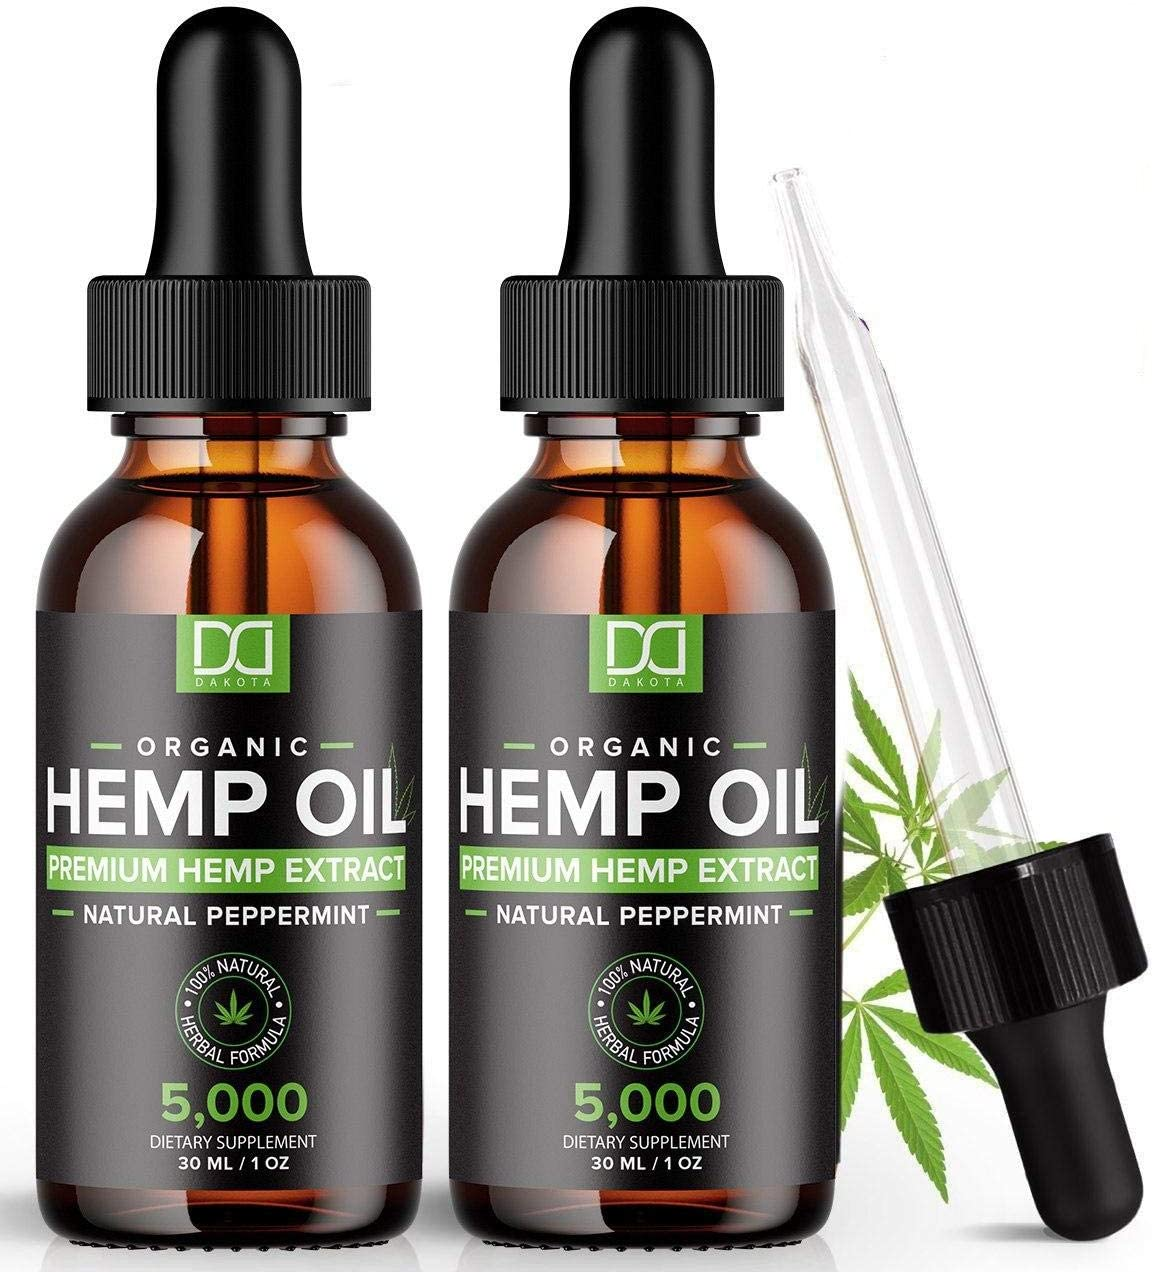 (2 Pack) 5000MG Hemp Oil for Pain Relief Anxiety Sleep Mood Stress 10000mg Total - Aceite de Cáñamo, l'huile de chanvre, Immune Support - Best Pure Natural Organic Hemp Seed Extract Tincture Drops: Health & Personal Care